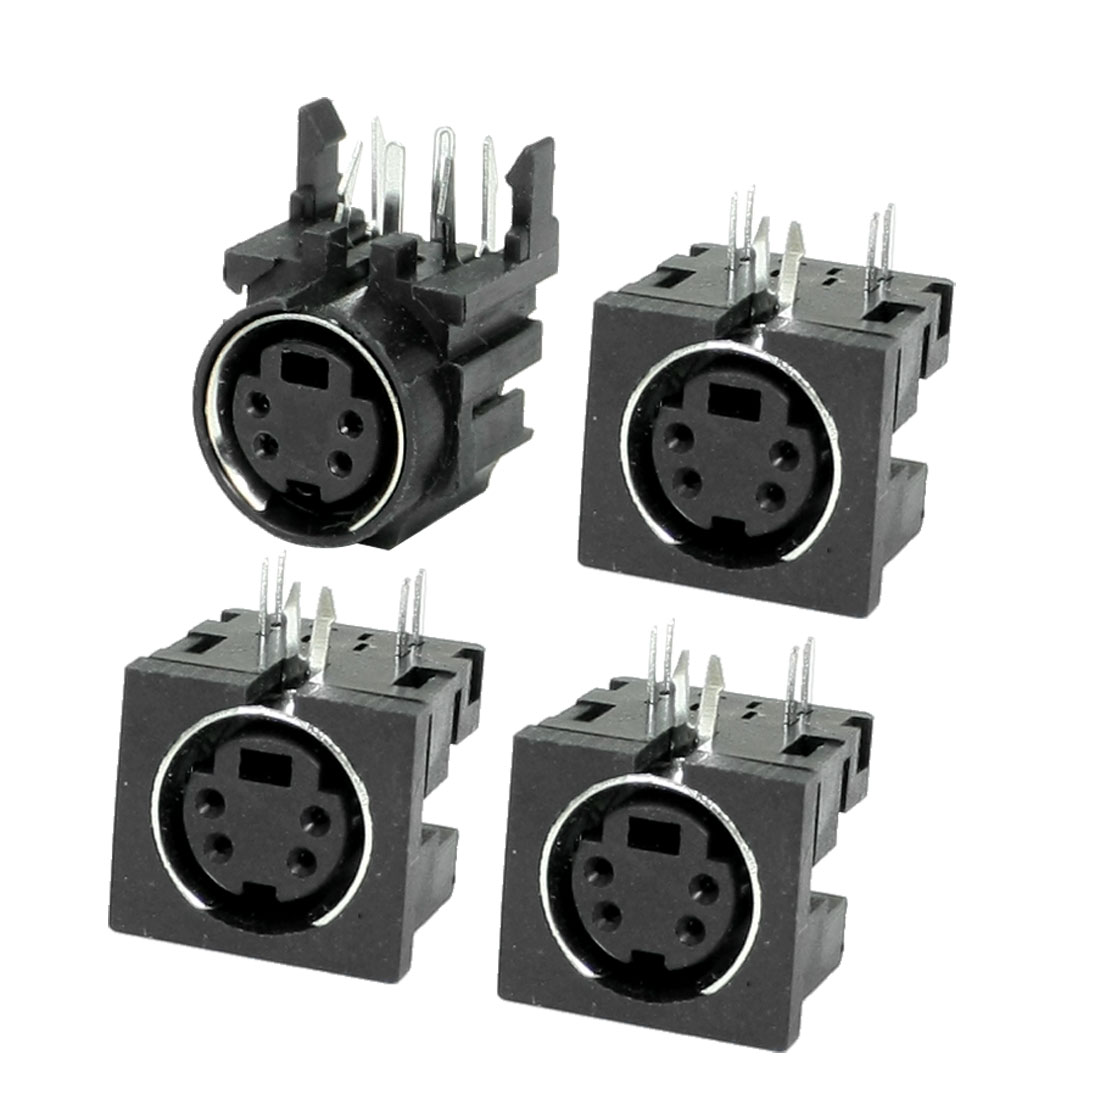 4 Pcs PCB Mounting 4 Pin Female S Jack DVD Mini Din Sockets Connectors